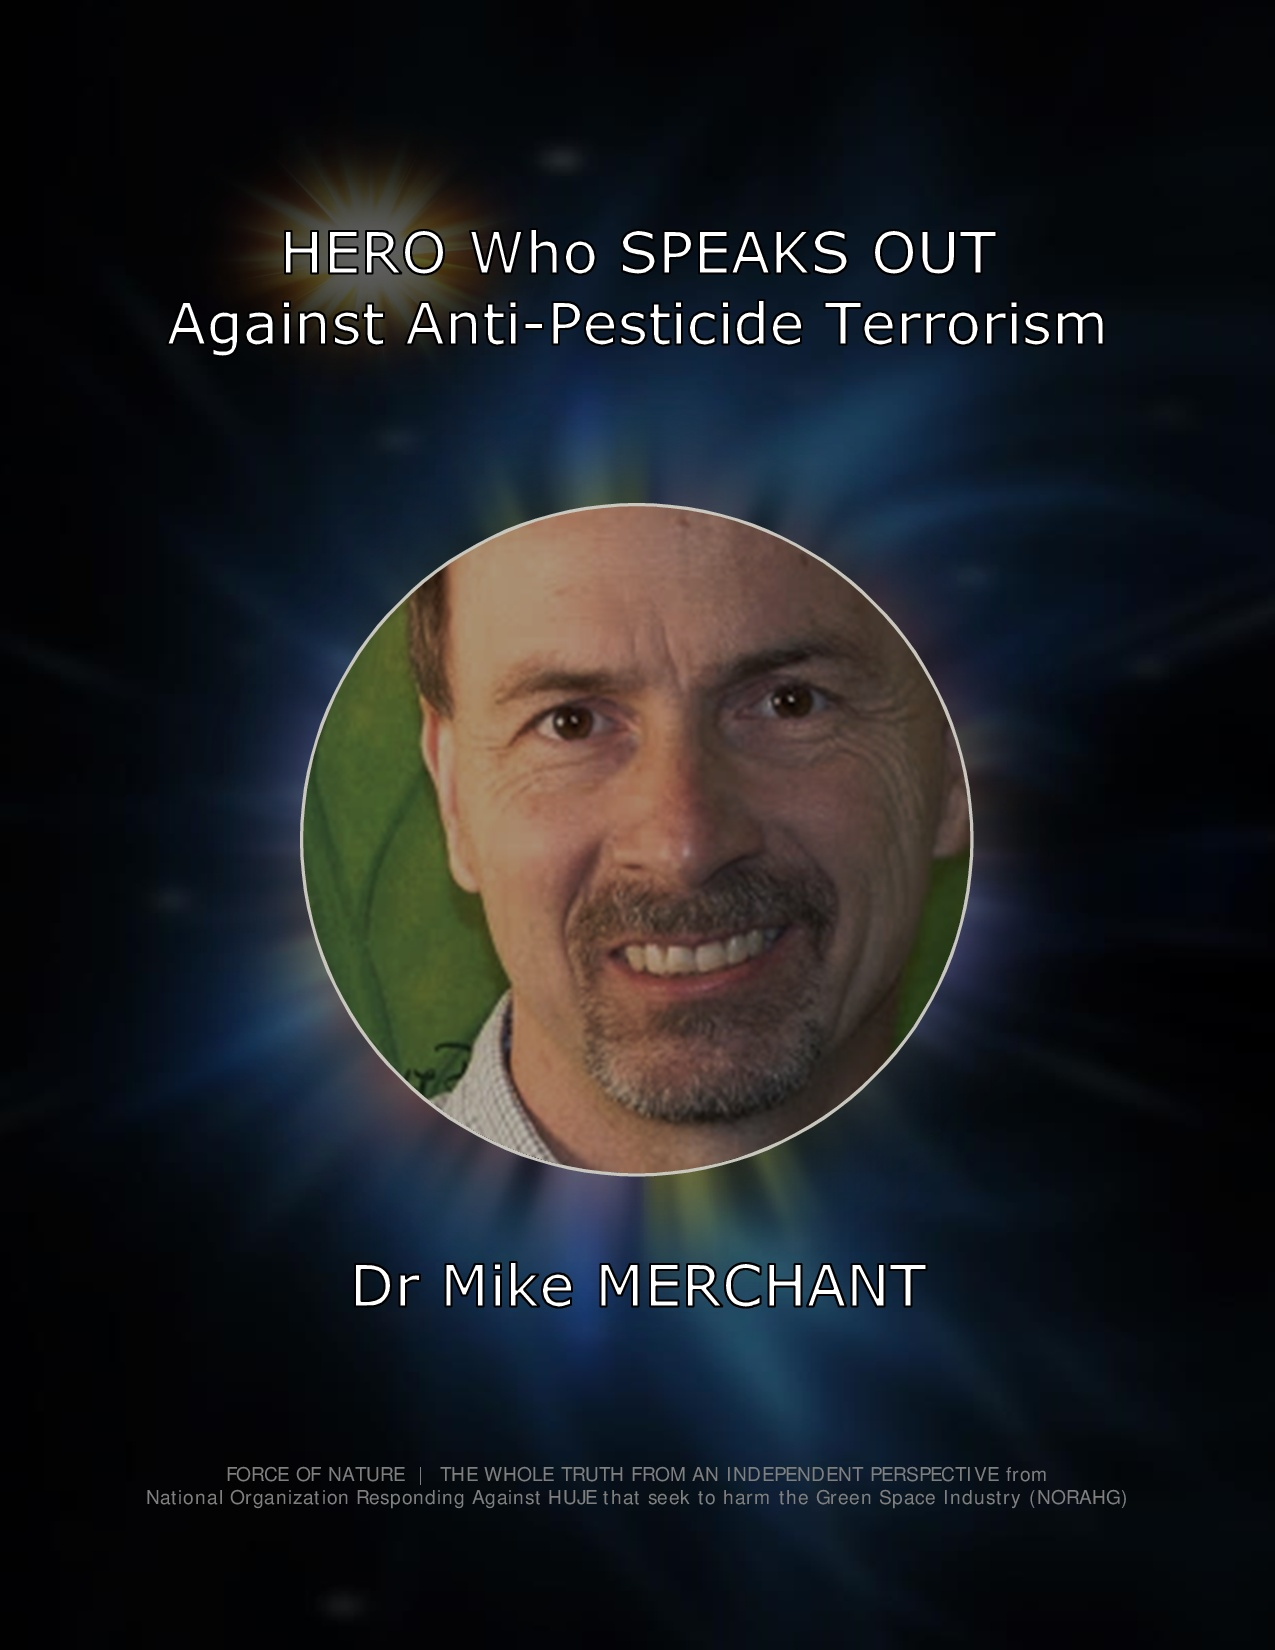 MERCHANT, Dr Mike